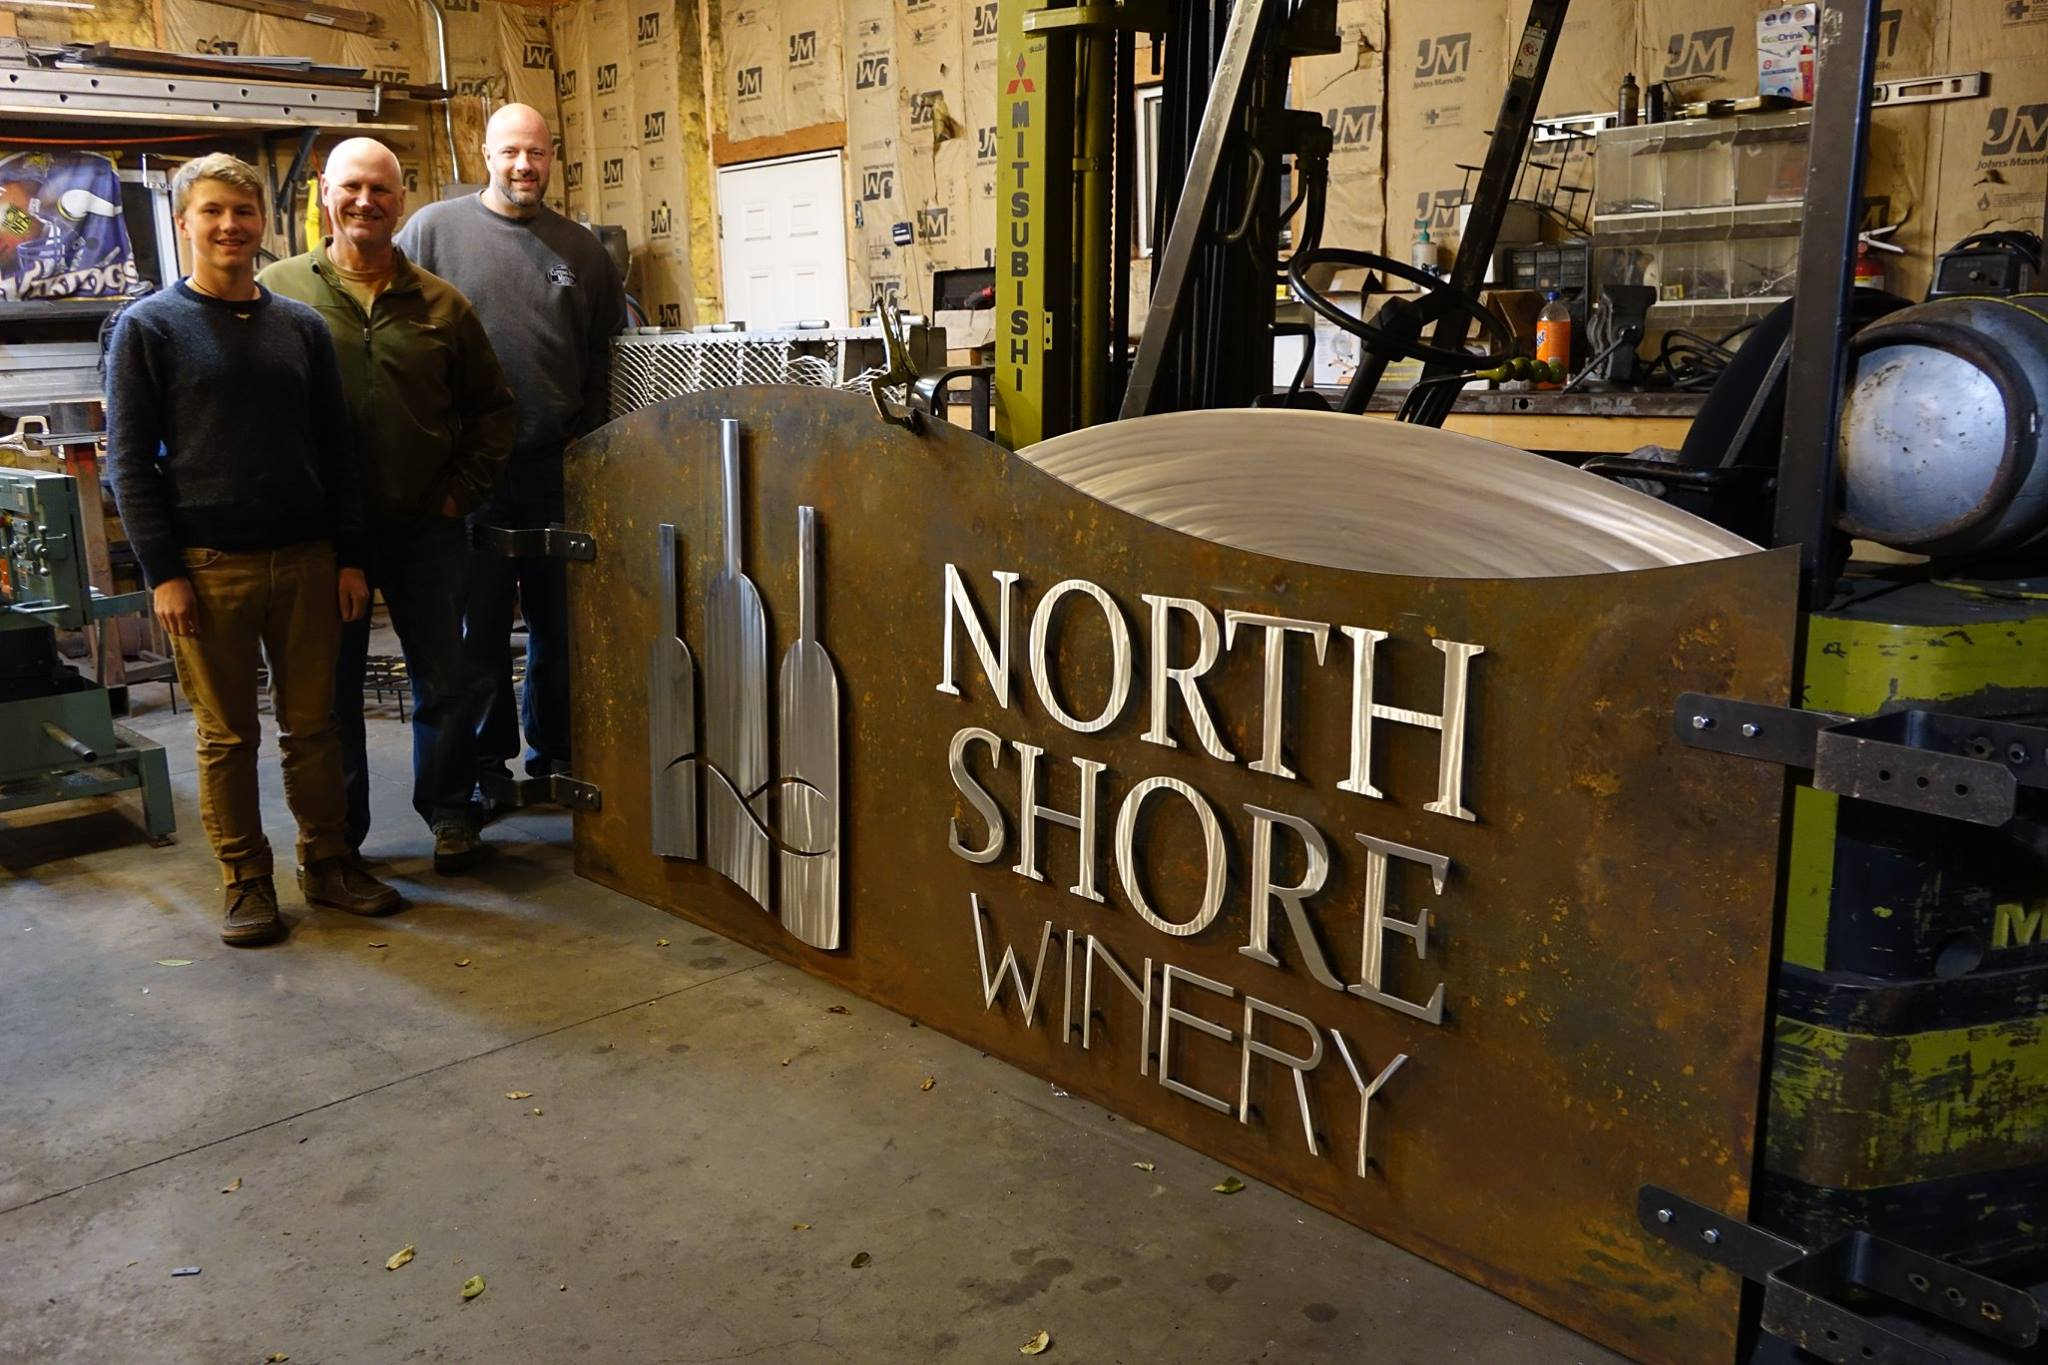 northshrore-winery-corliss.jpg